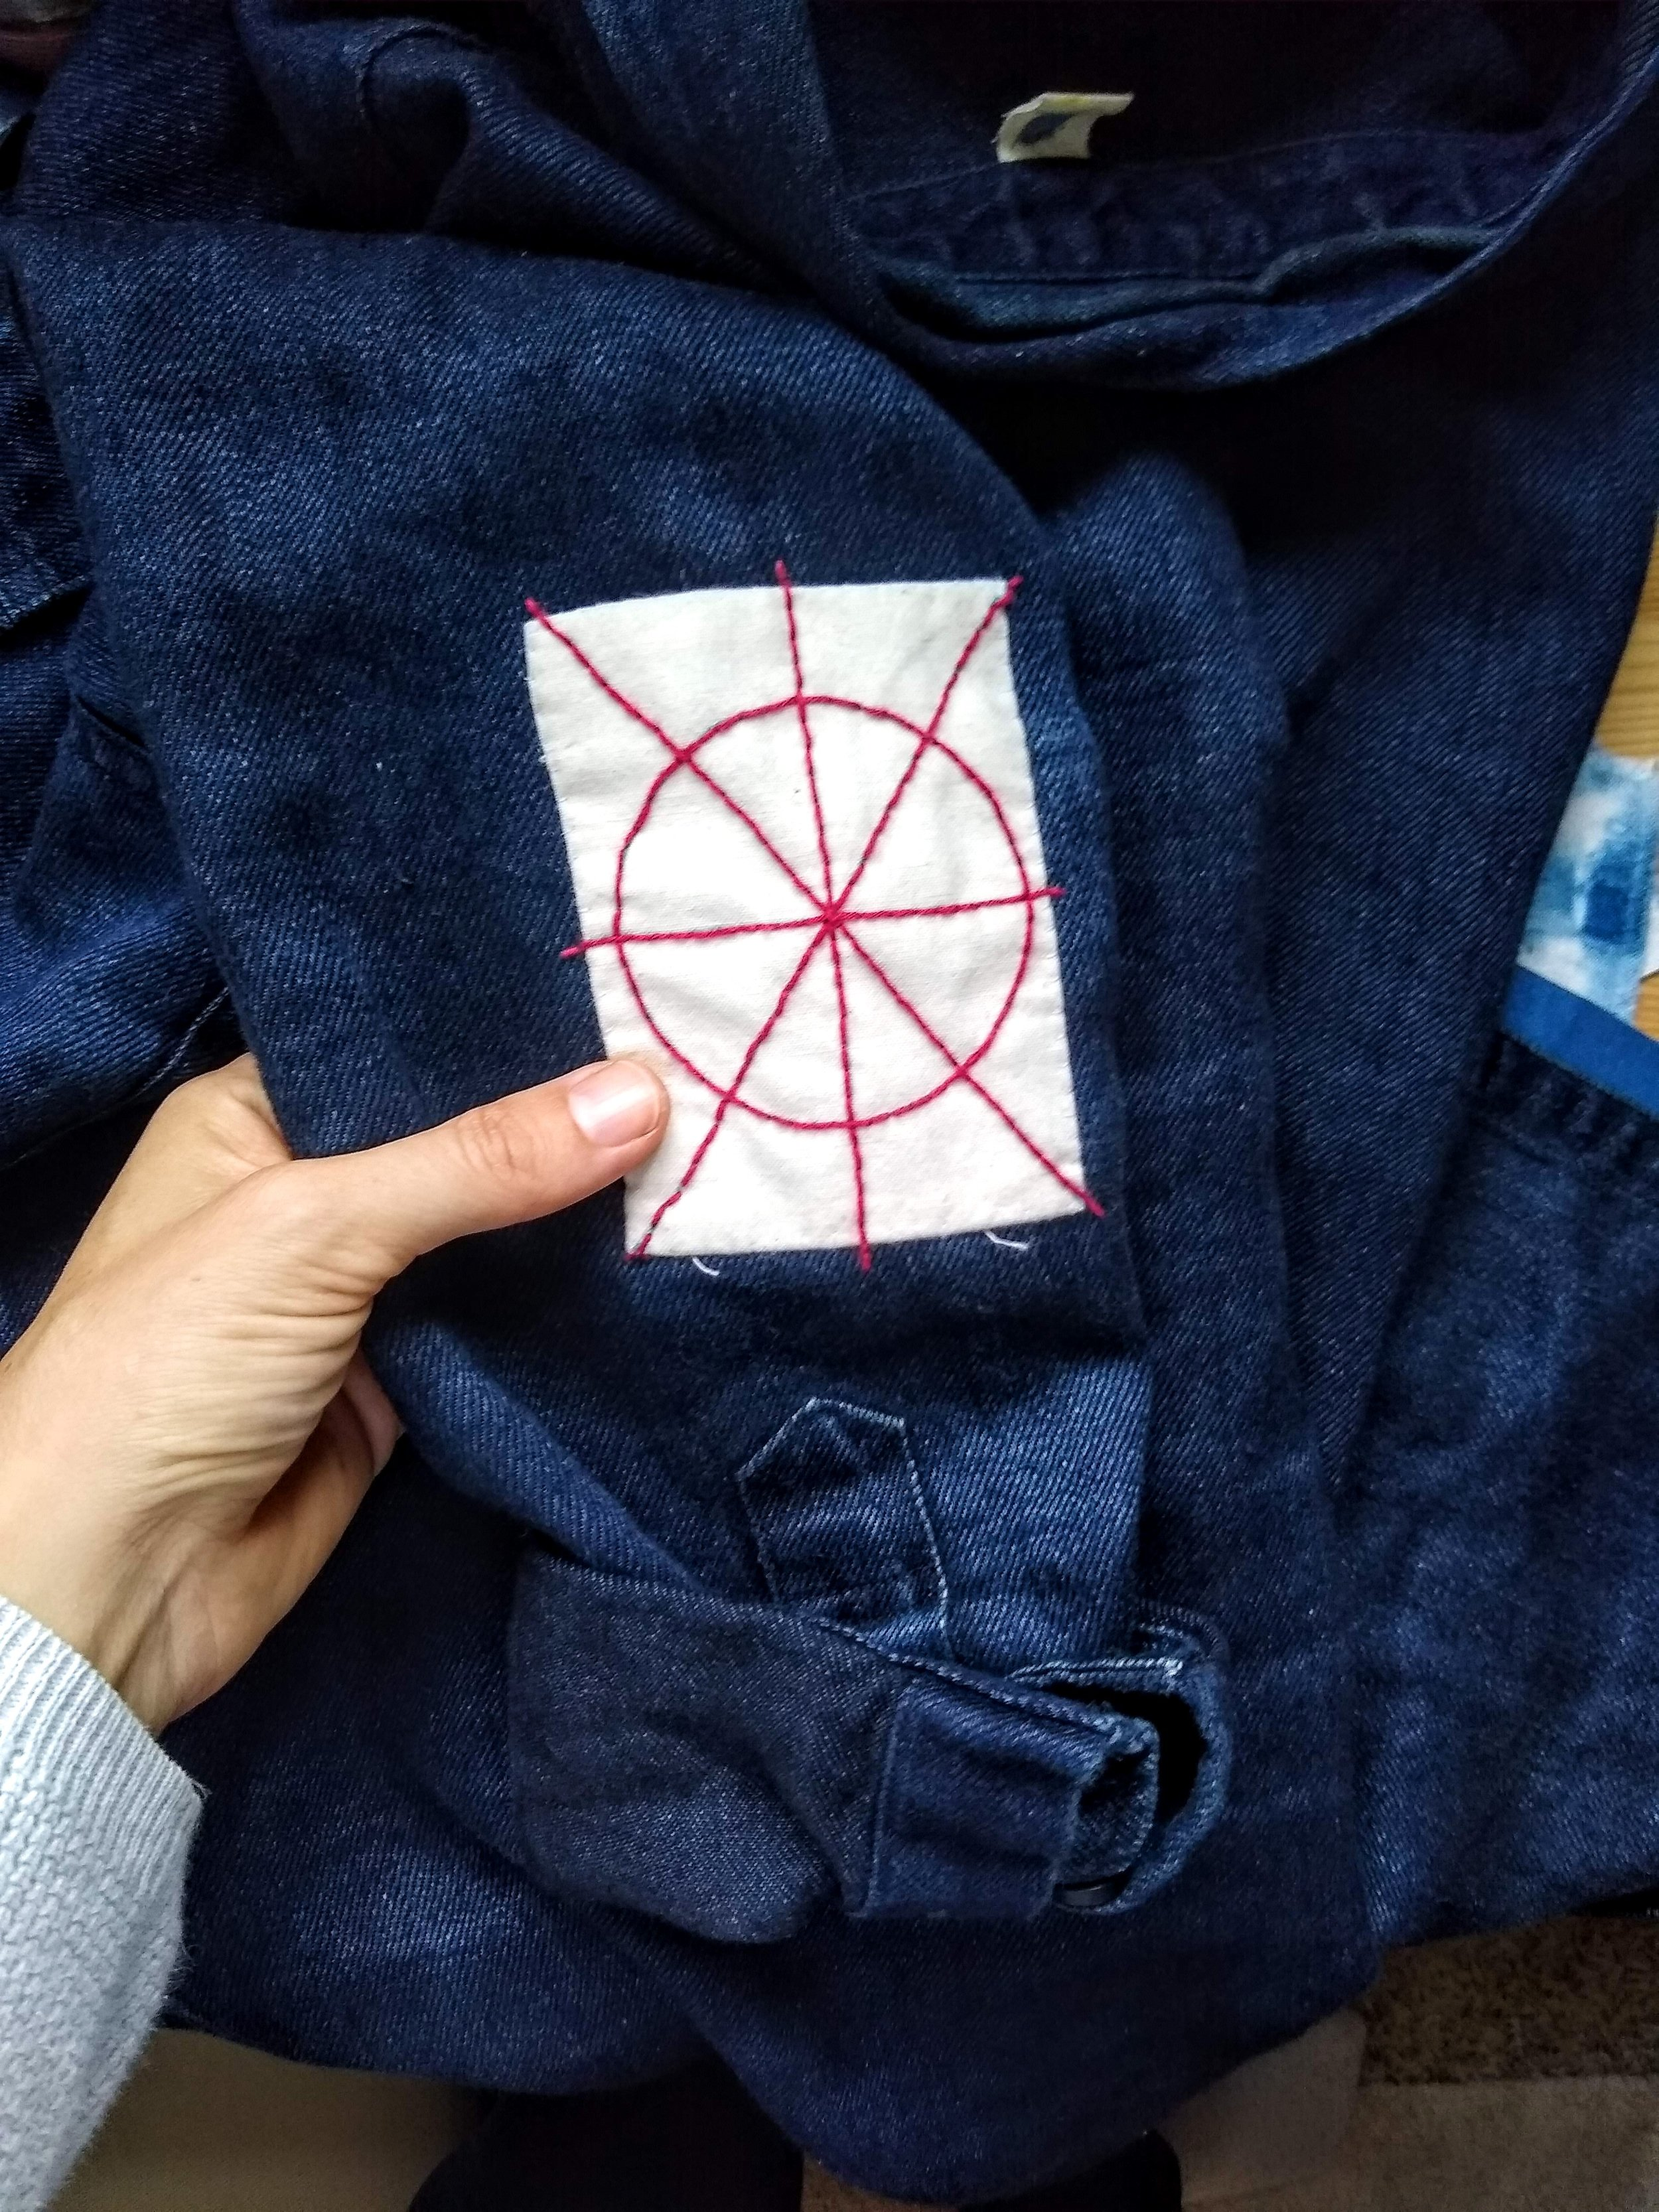 A basic fabric appliquéd patch with red sashiko top stitching to add strength and interest on an oversized denim shirt.